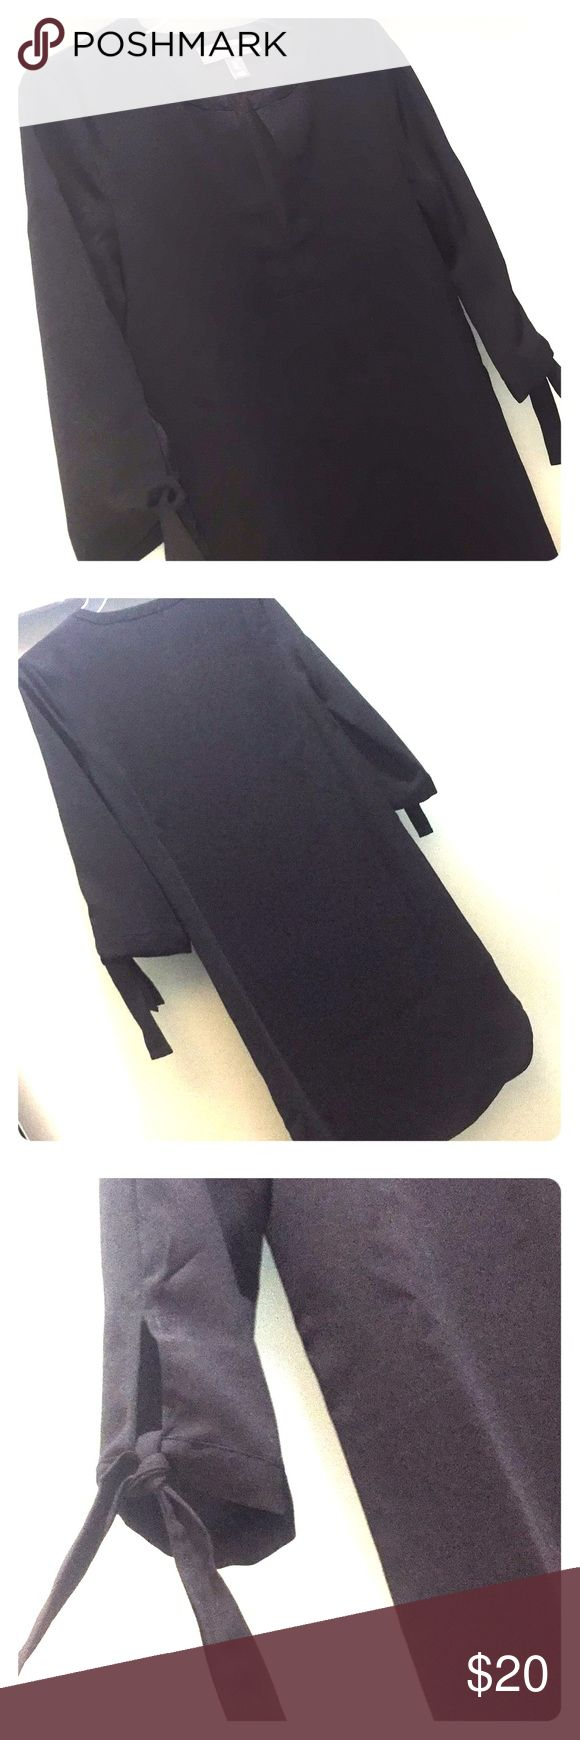 Donna Ricco black dress Donna Ricco black dress. Size 2 US. 16 inch long sleeves. 35 inch long from top to bottom. This dress would be adorable worn with a belt! ... or with black tights! Donna Ricco Dresses Long Sleeve